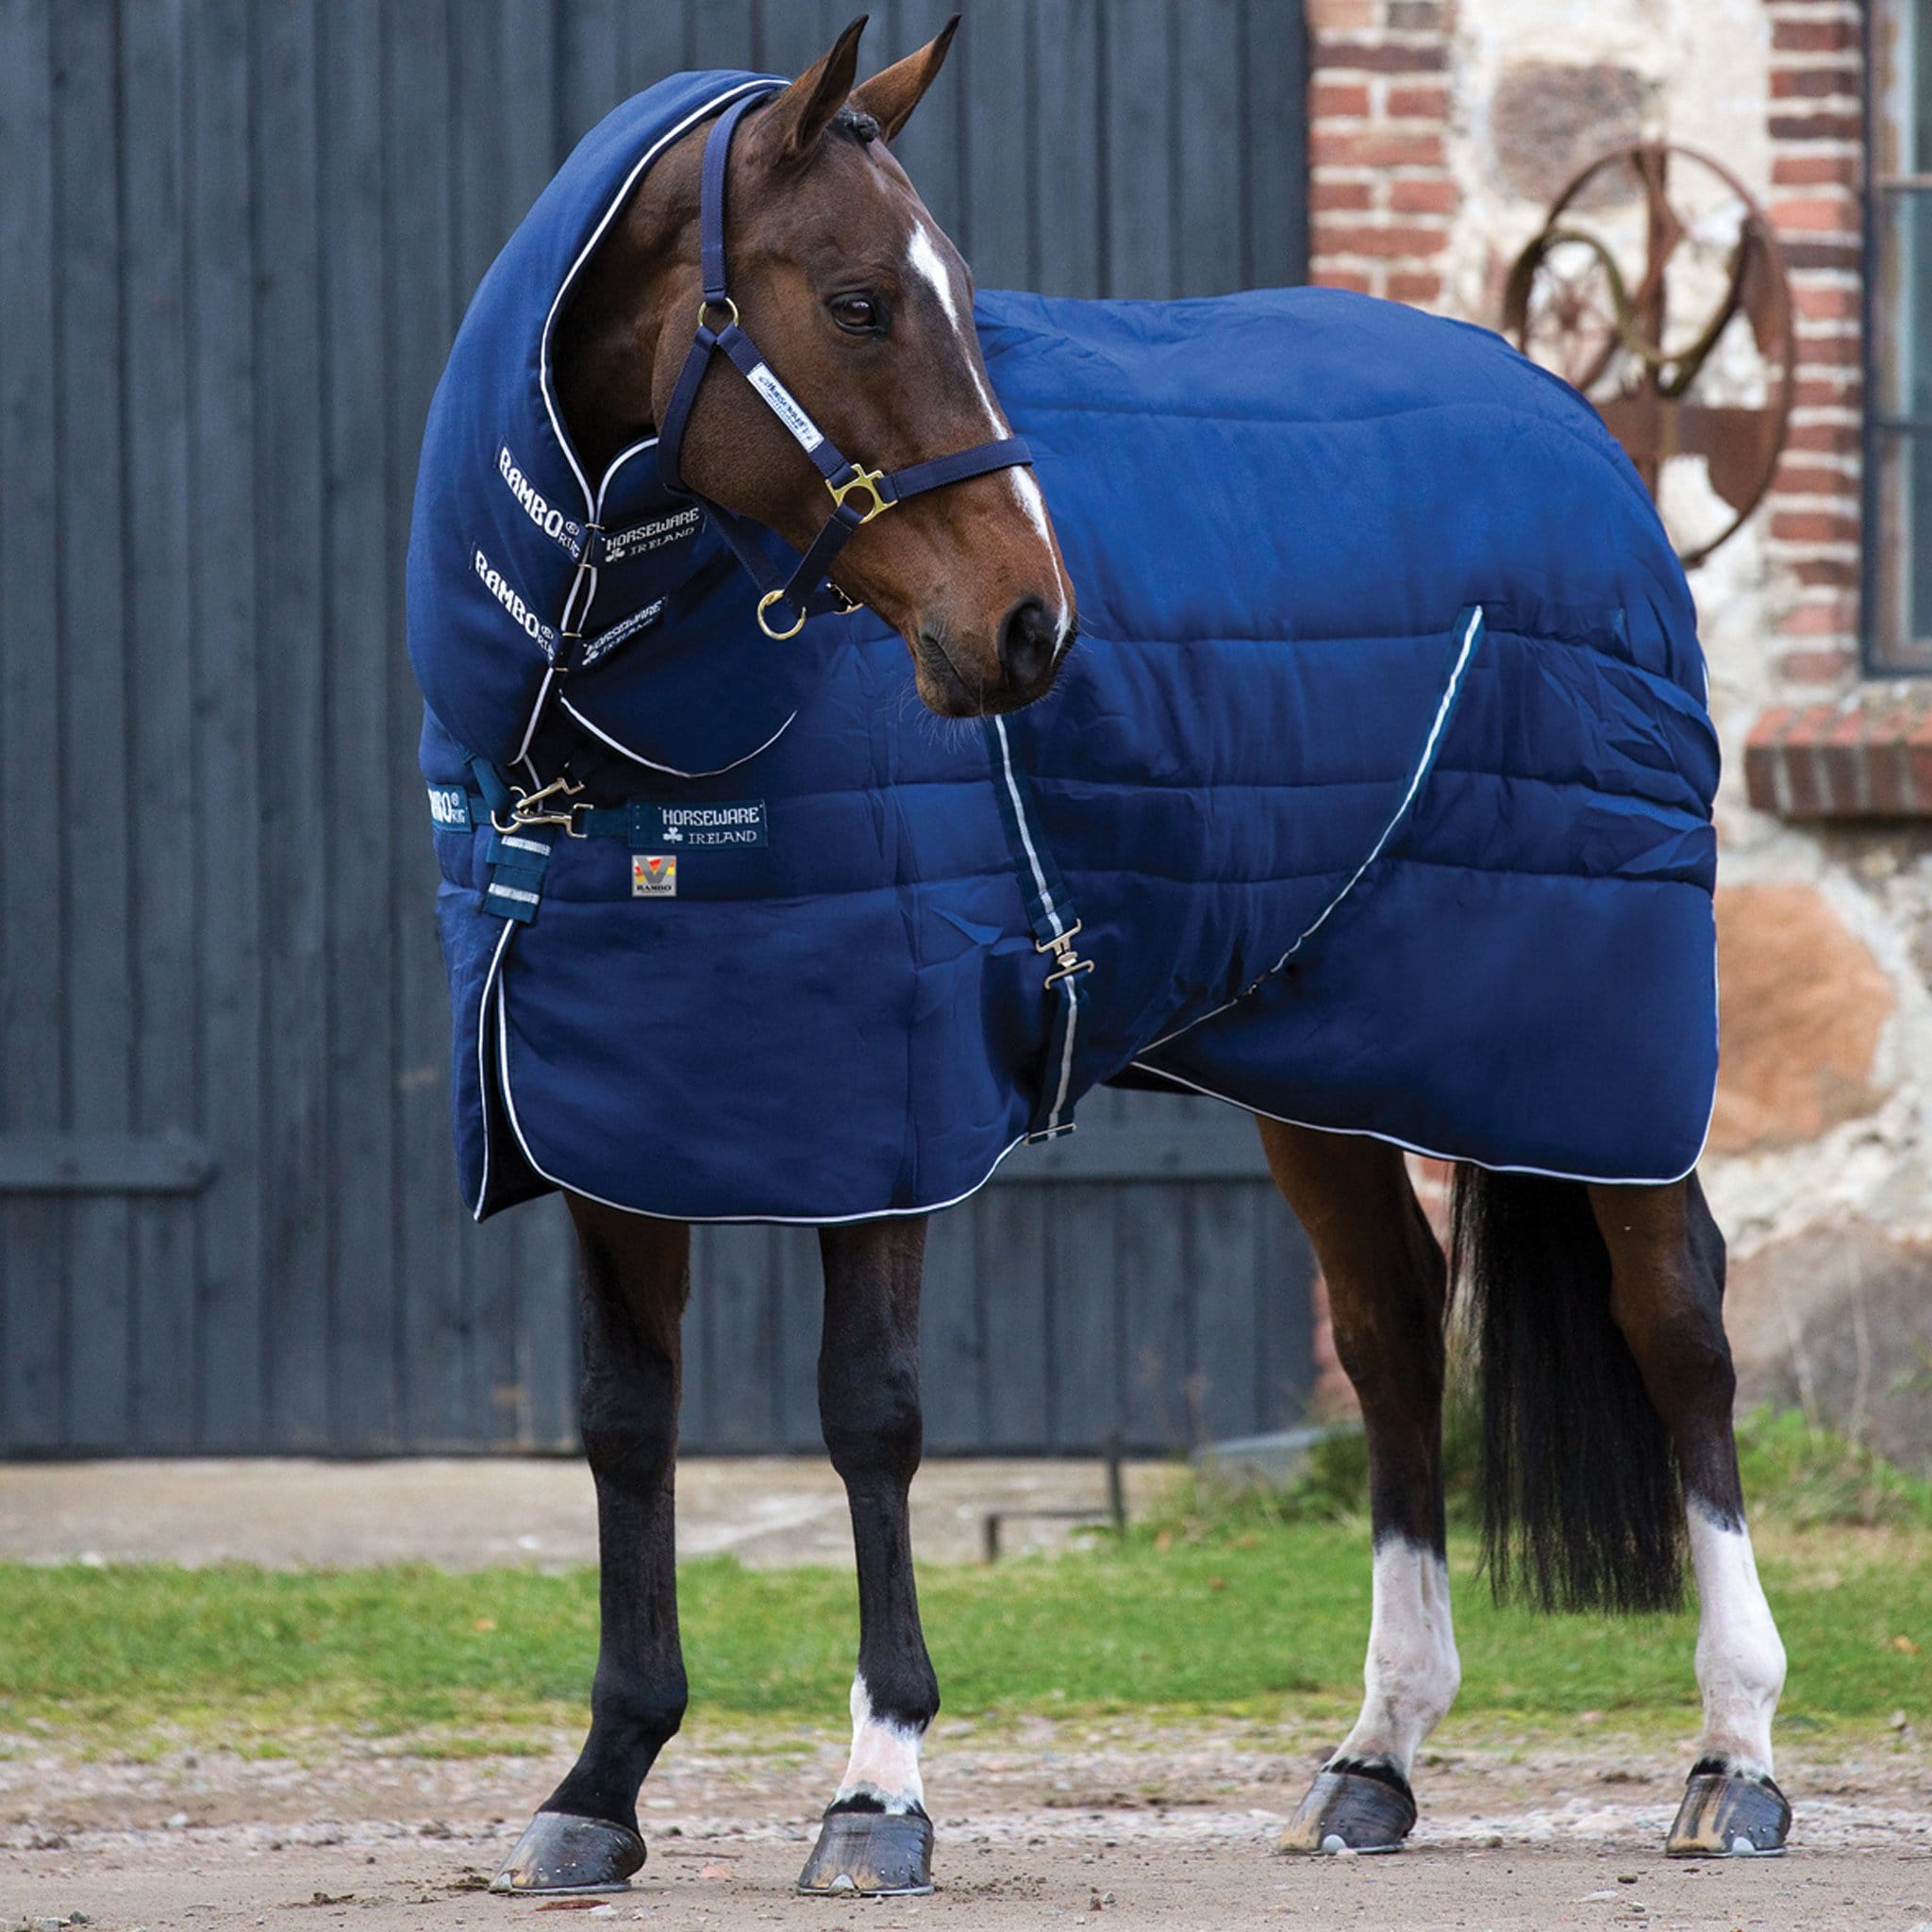 Rambo Plus Heavyweight 450g Detachable Neck Stable Rug with Vari-Layer ABAR34 On Horse